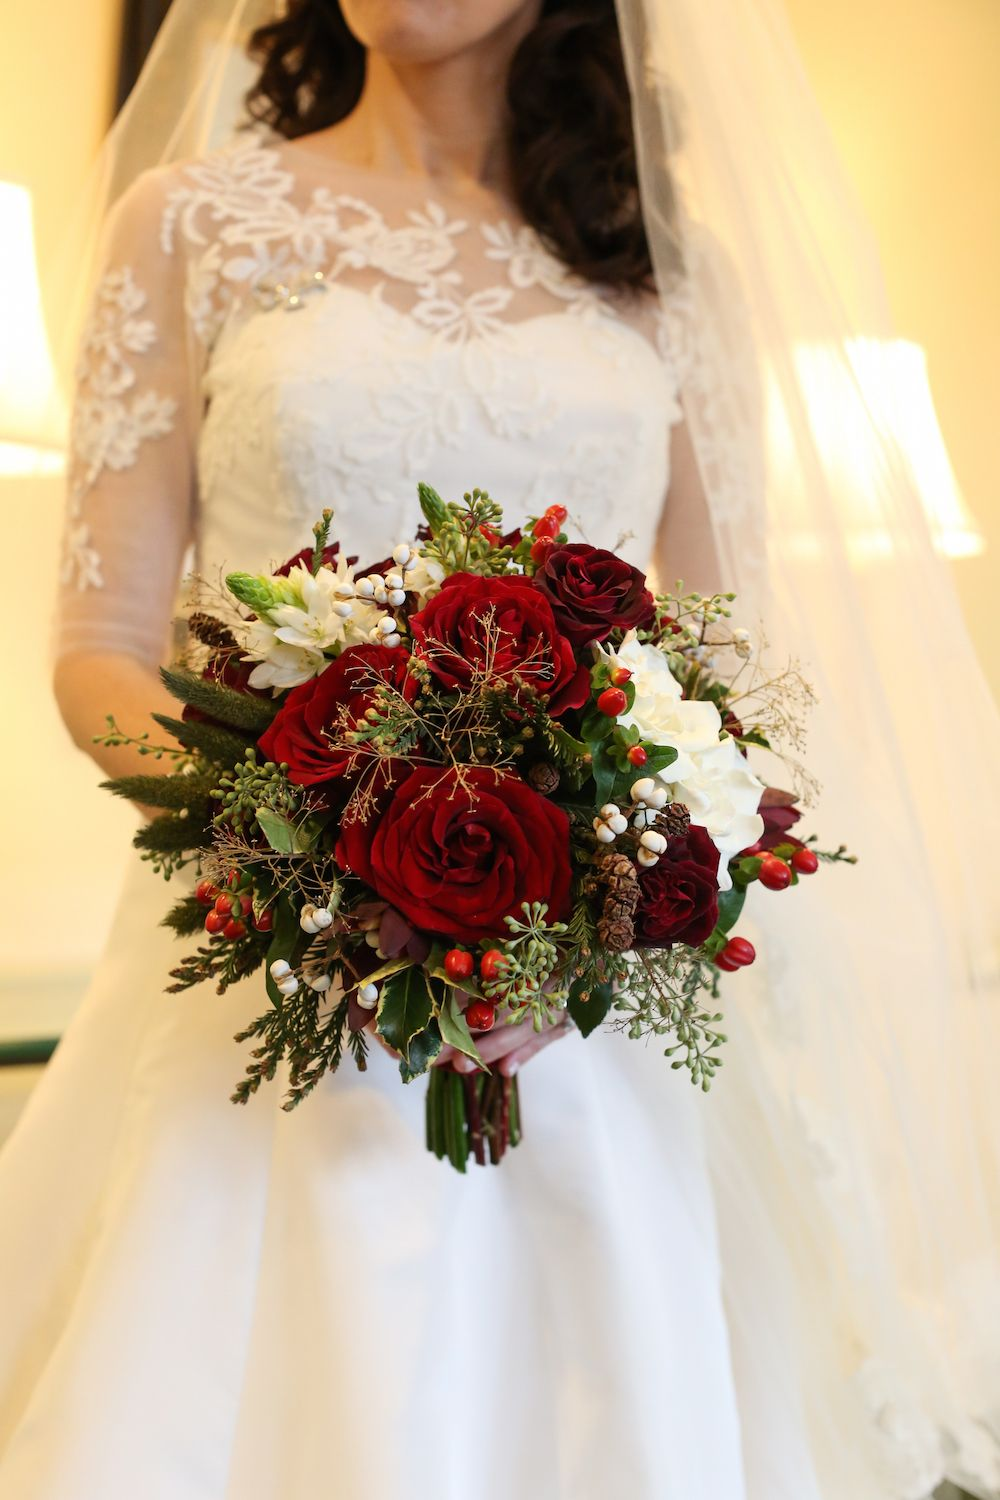 ChristmasTheme Wedding with Festive Red & Green Décor in